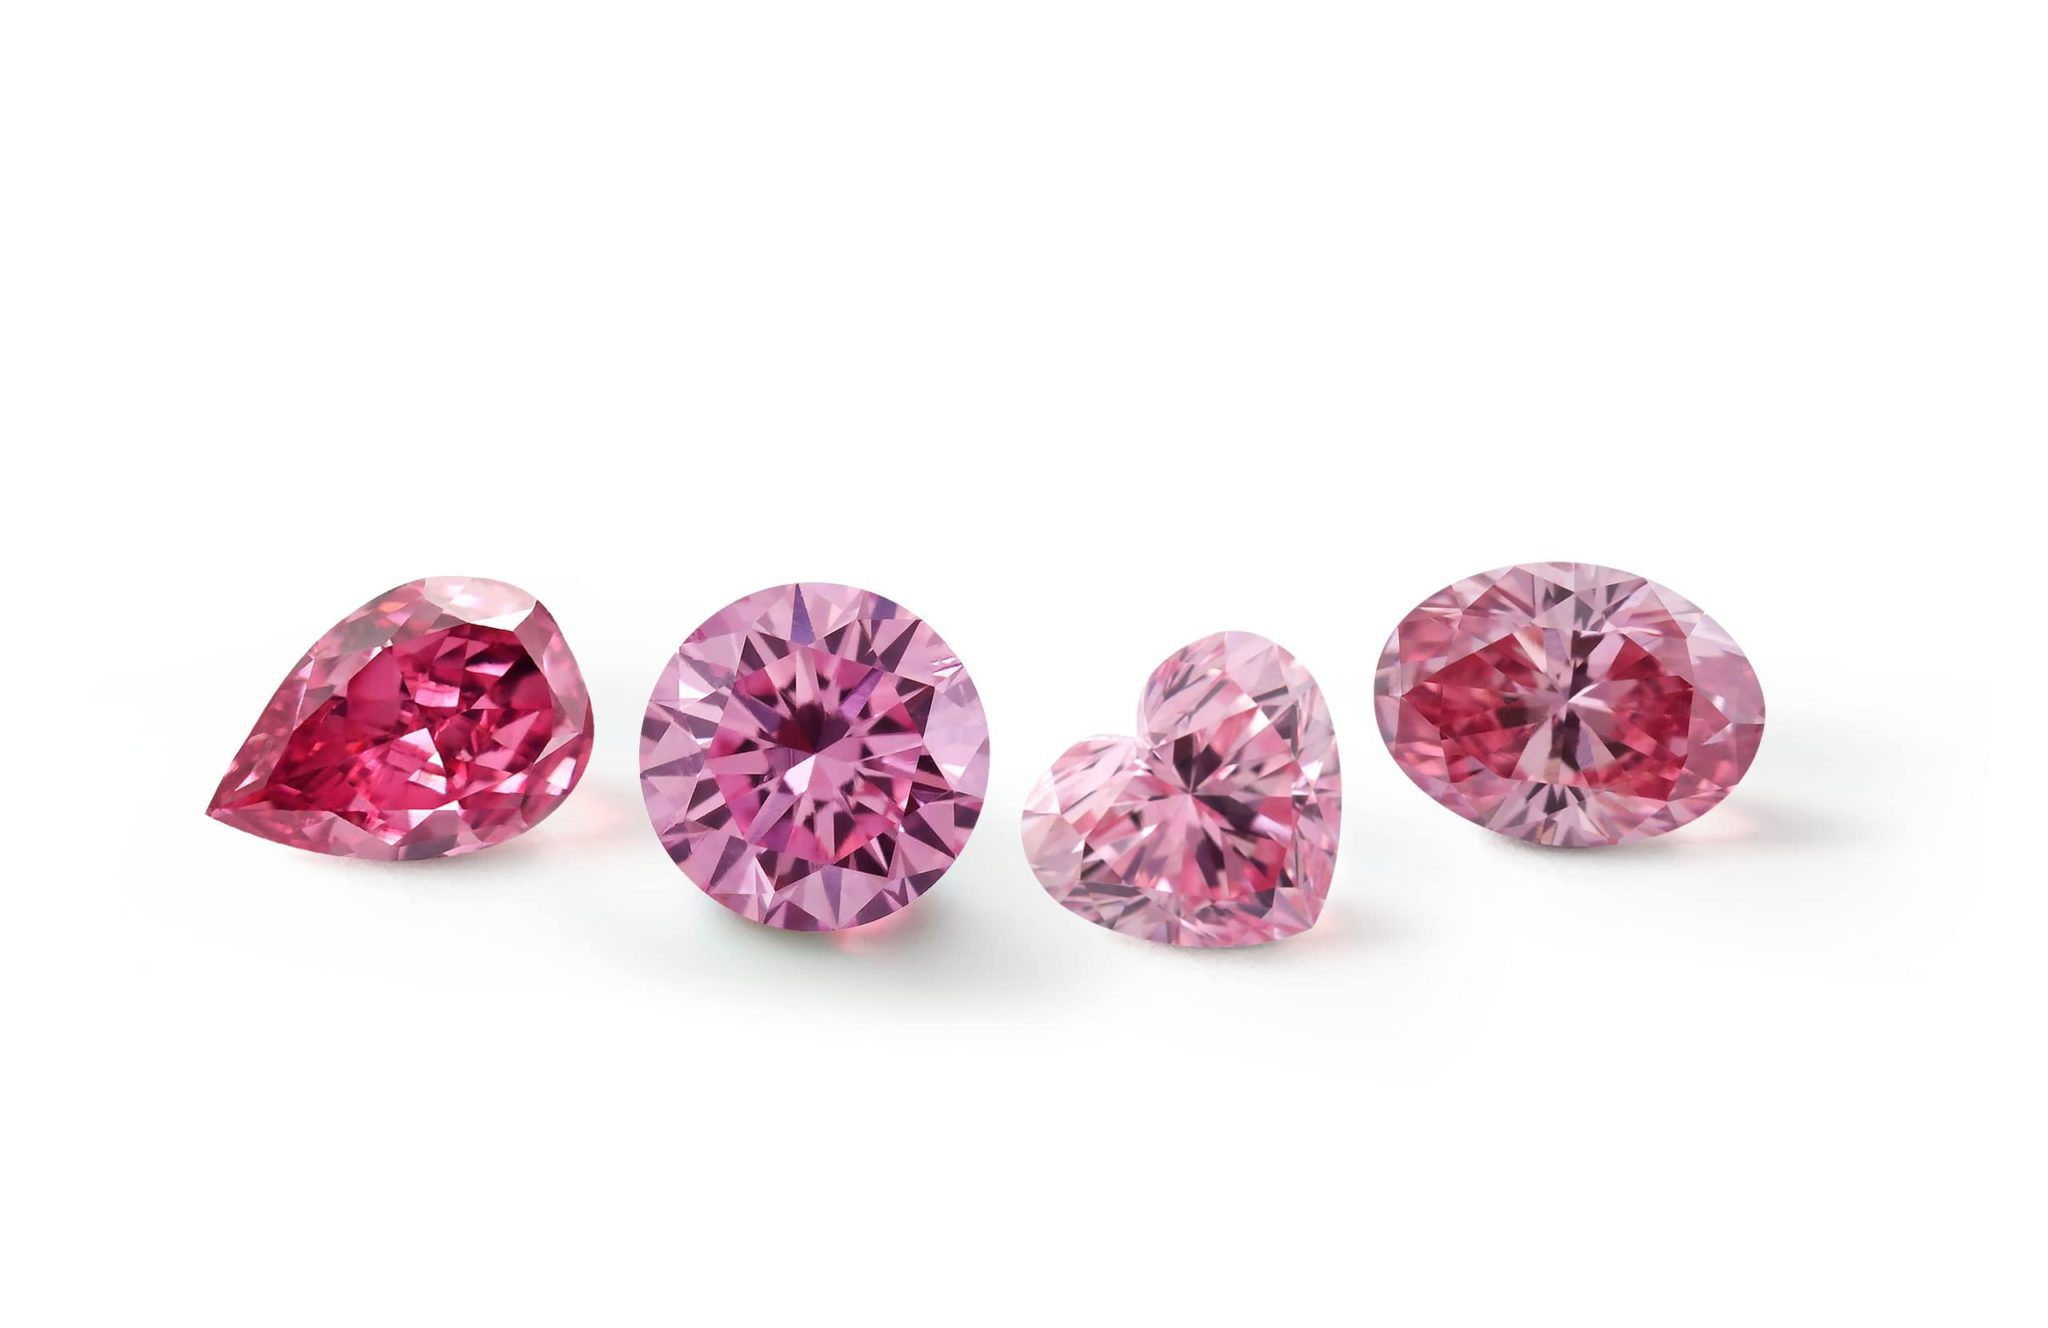 Pink Diamond Clarity: Know How to Acquire the Best Australian Pink Diamond - Pink Diamond